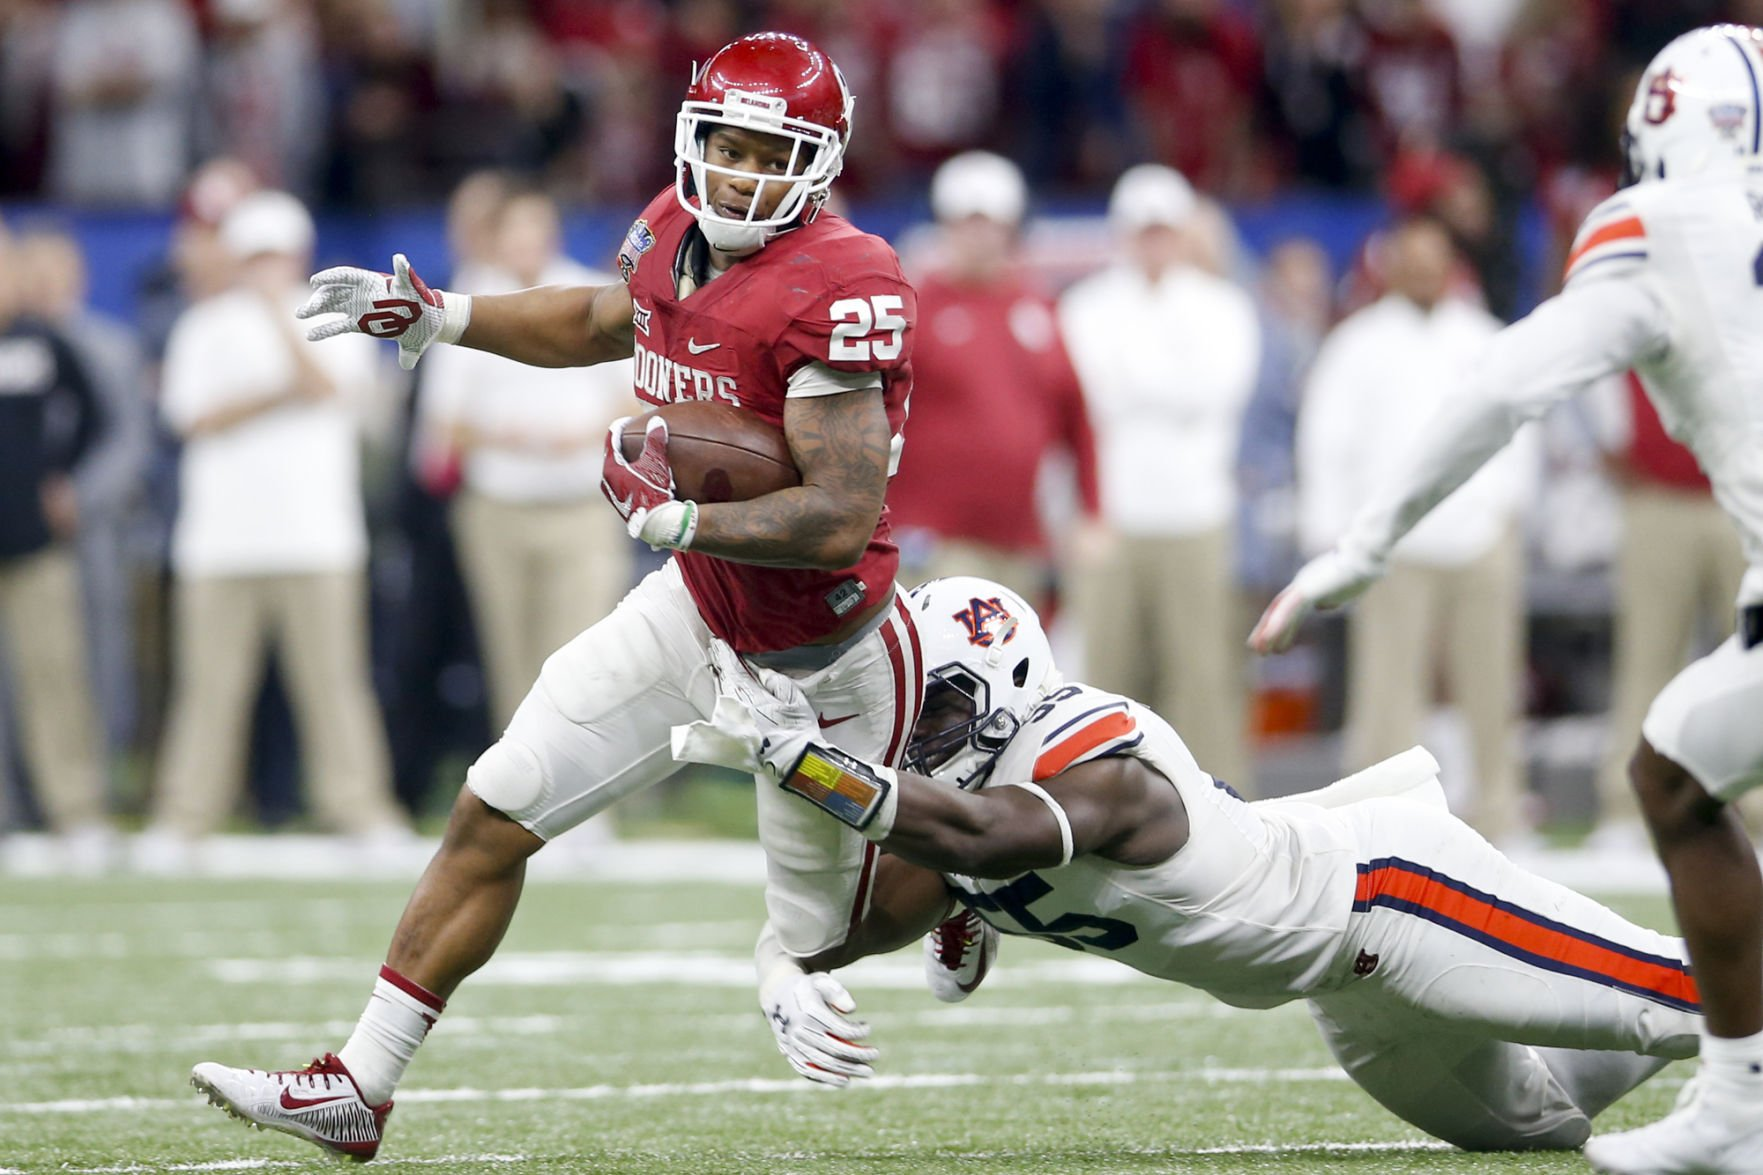 Oklahoma RB Joe Mixon to Enter NFL Draft